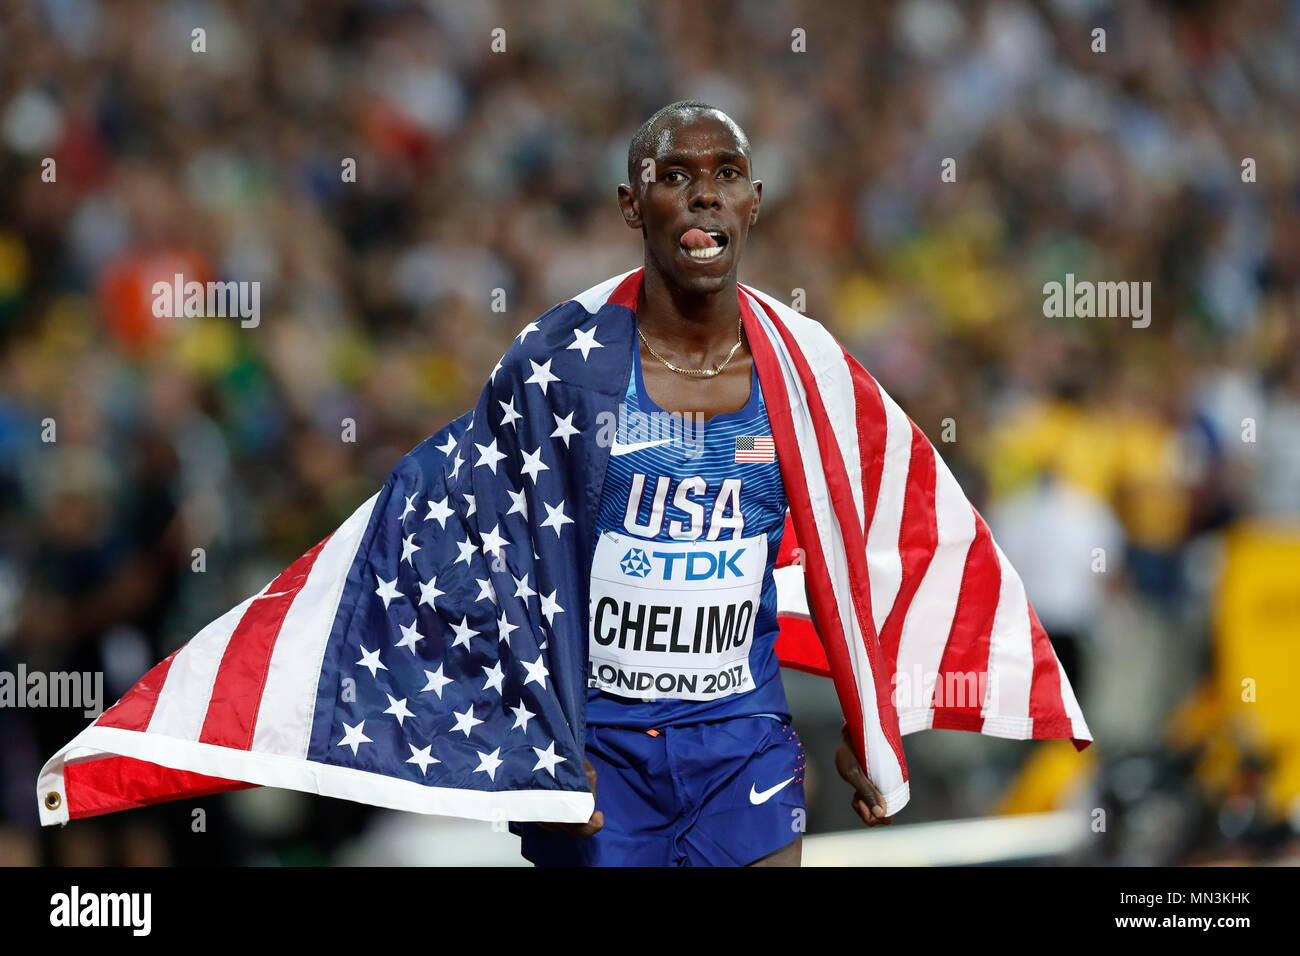 LONDON, ENGLAND - AUGUST 12: Paul Kipkemoi Chelimo of the United States celebrates after the Men's 5000 Metres Final during day nine of the 16th IAAF World Athletics Championships London 2017 at The London Stadium on August 12, 2017 in London, United Kingdom --- Image by © Paul Cunningham - Stock Image